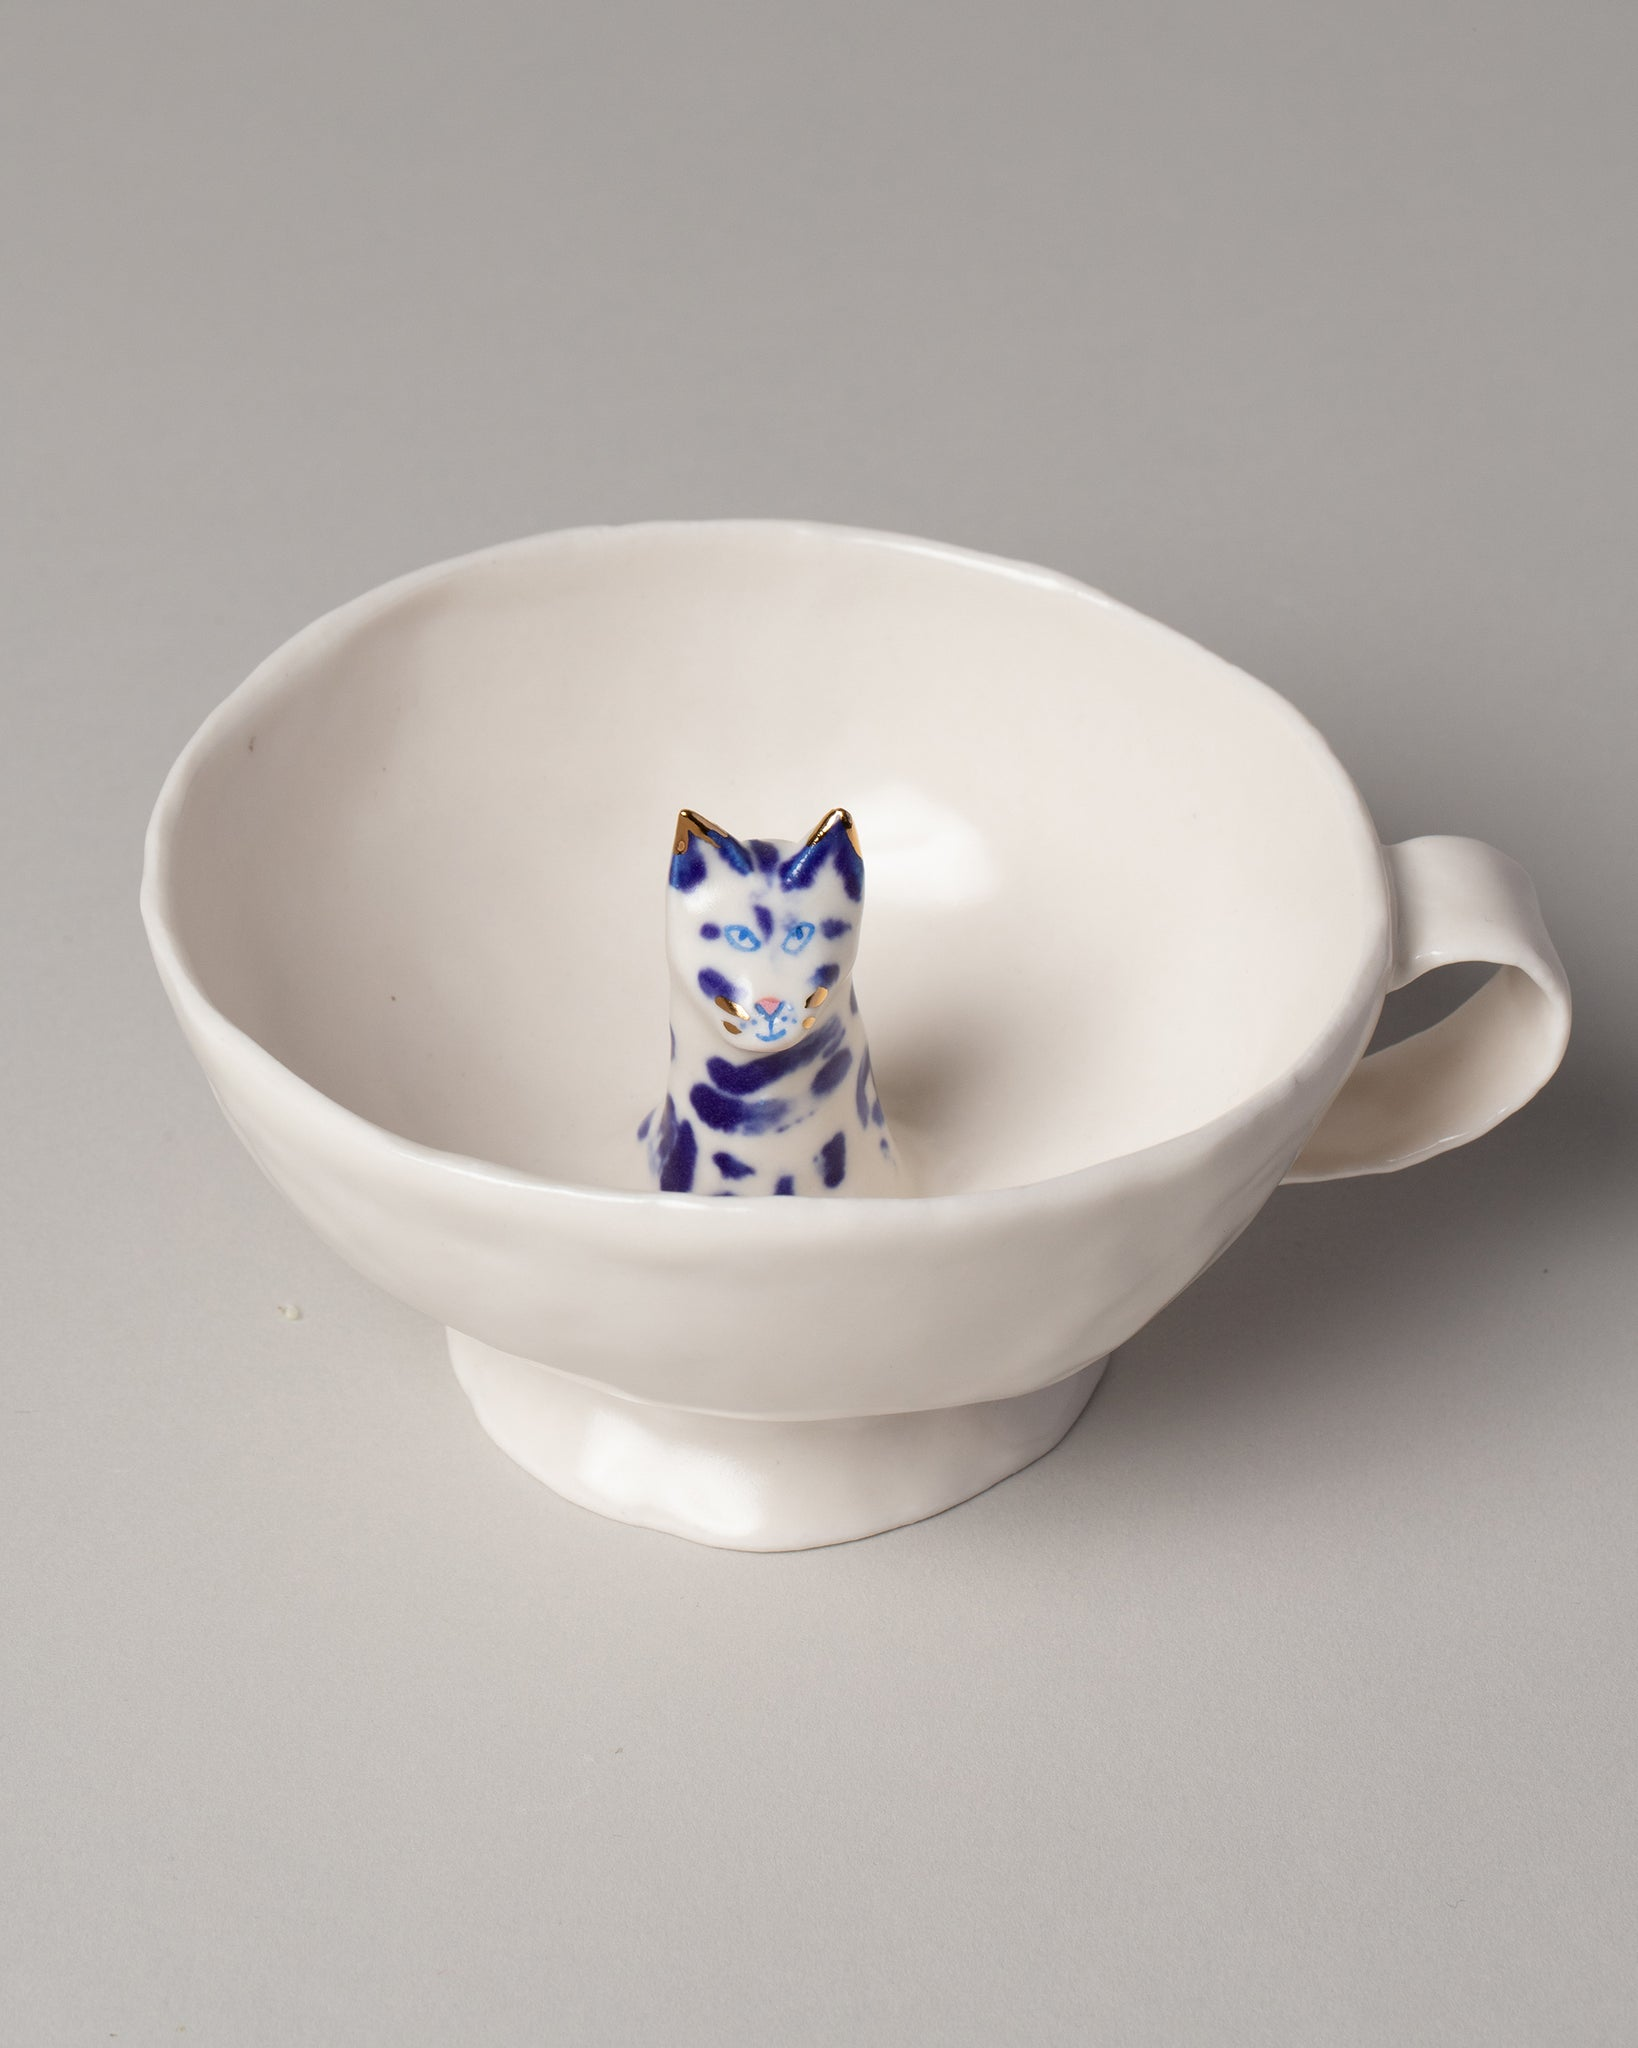 Eleonor Boström Cat Cup on light color background.